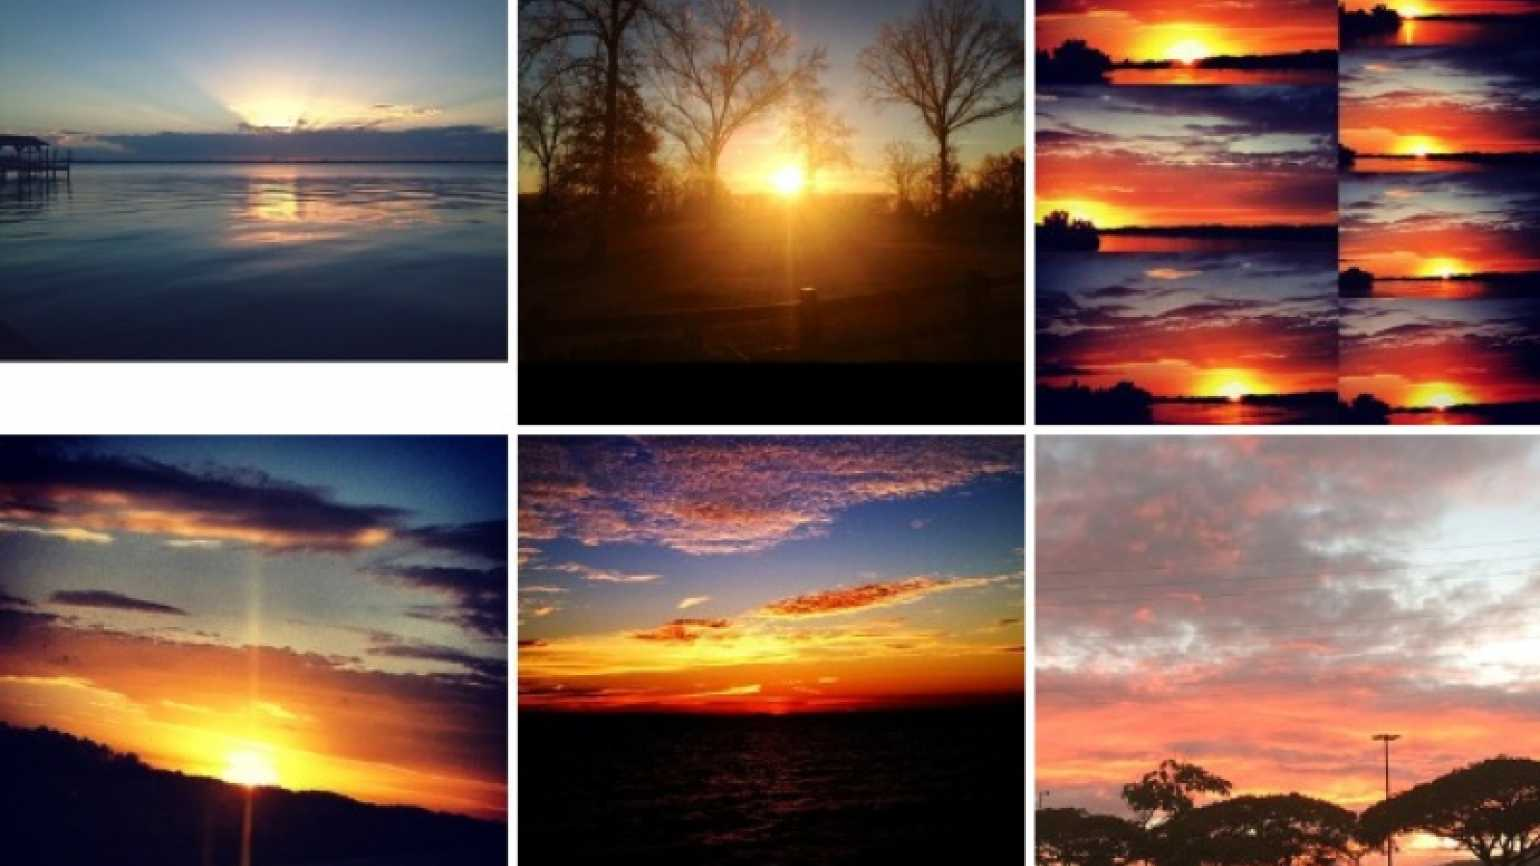 Pictures of beautiful sunsets found on Instagram under #godscanvas